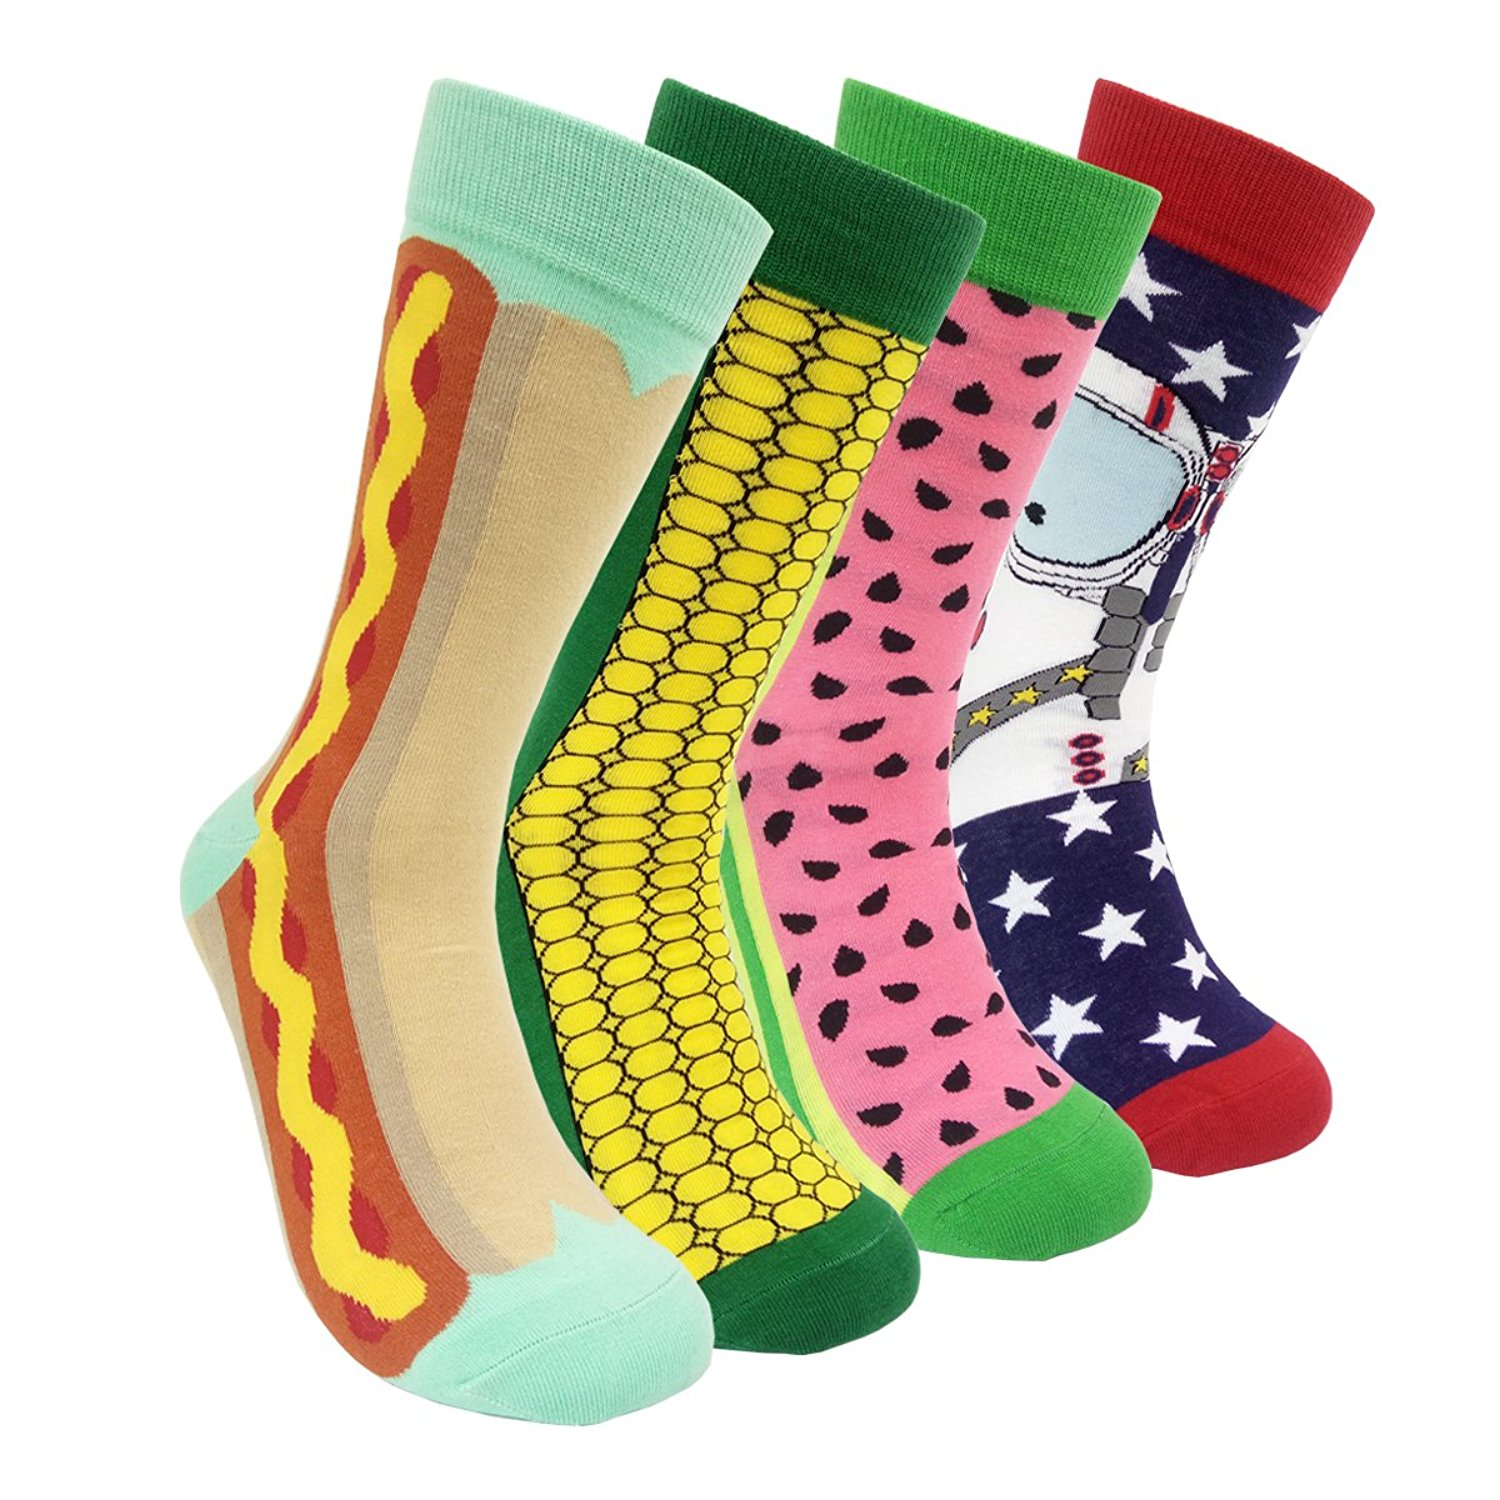 2e1e7ddb28035 Buy Mens Colorful Dress Socks Argyle – HSELL Men Multicolored Pattern  Fashionable Fun Crew Socks 4 Pack in Cheap Price on m.alibaba.com